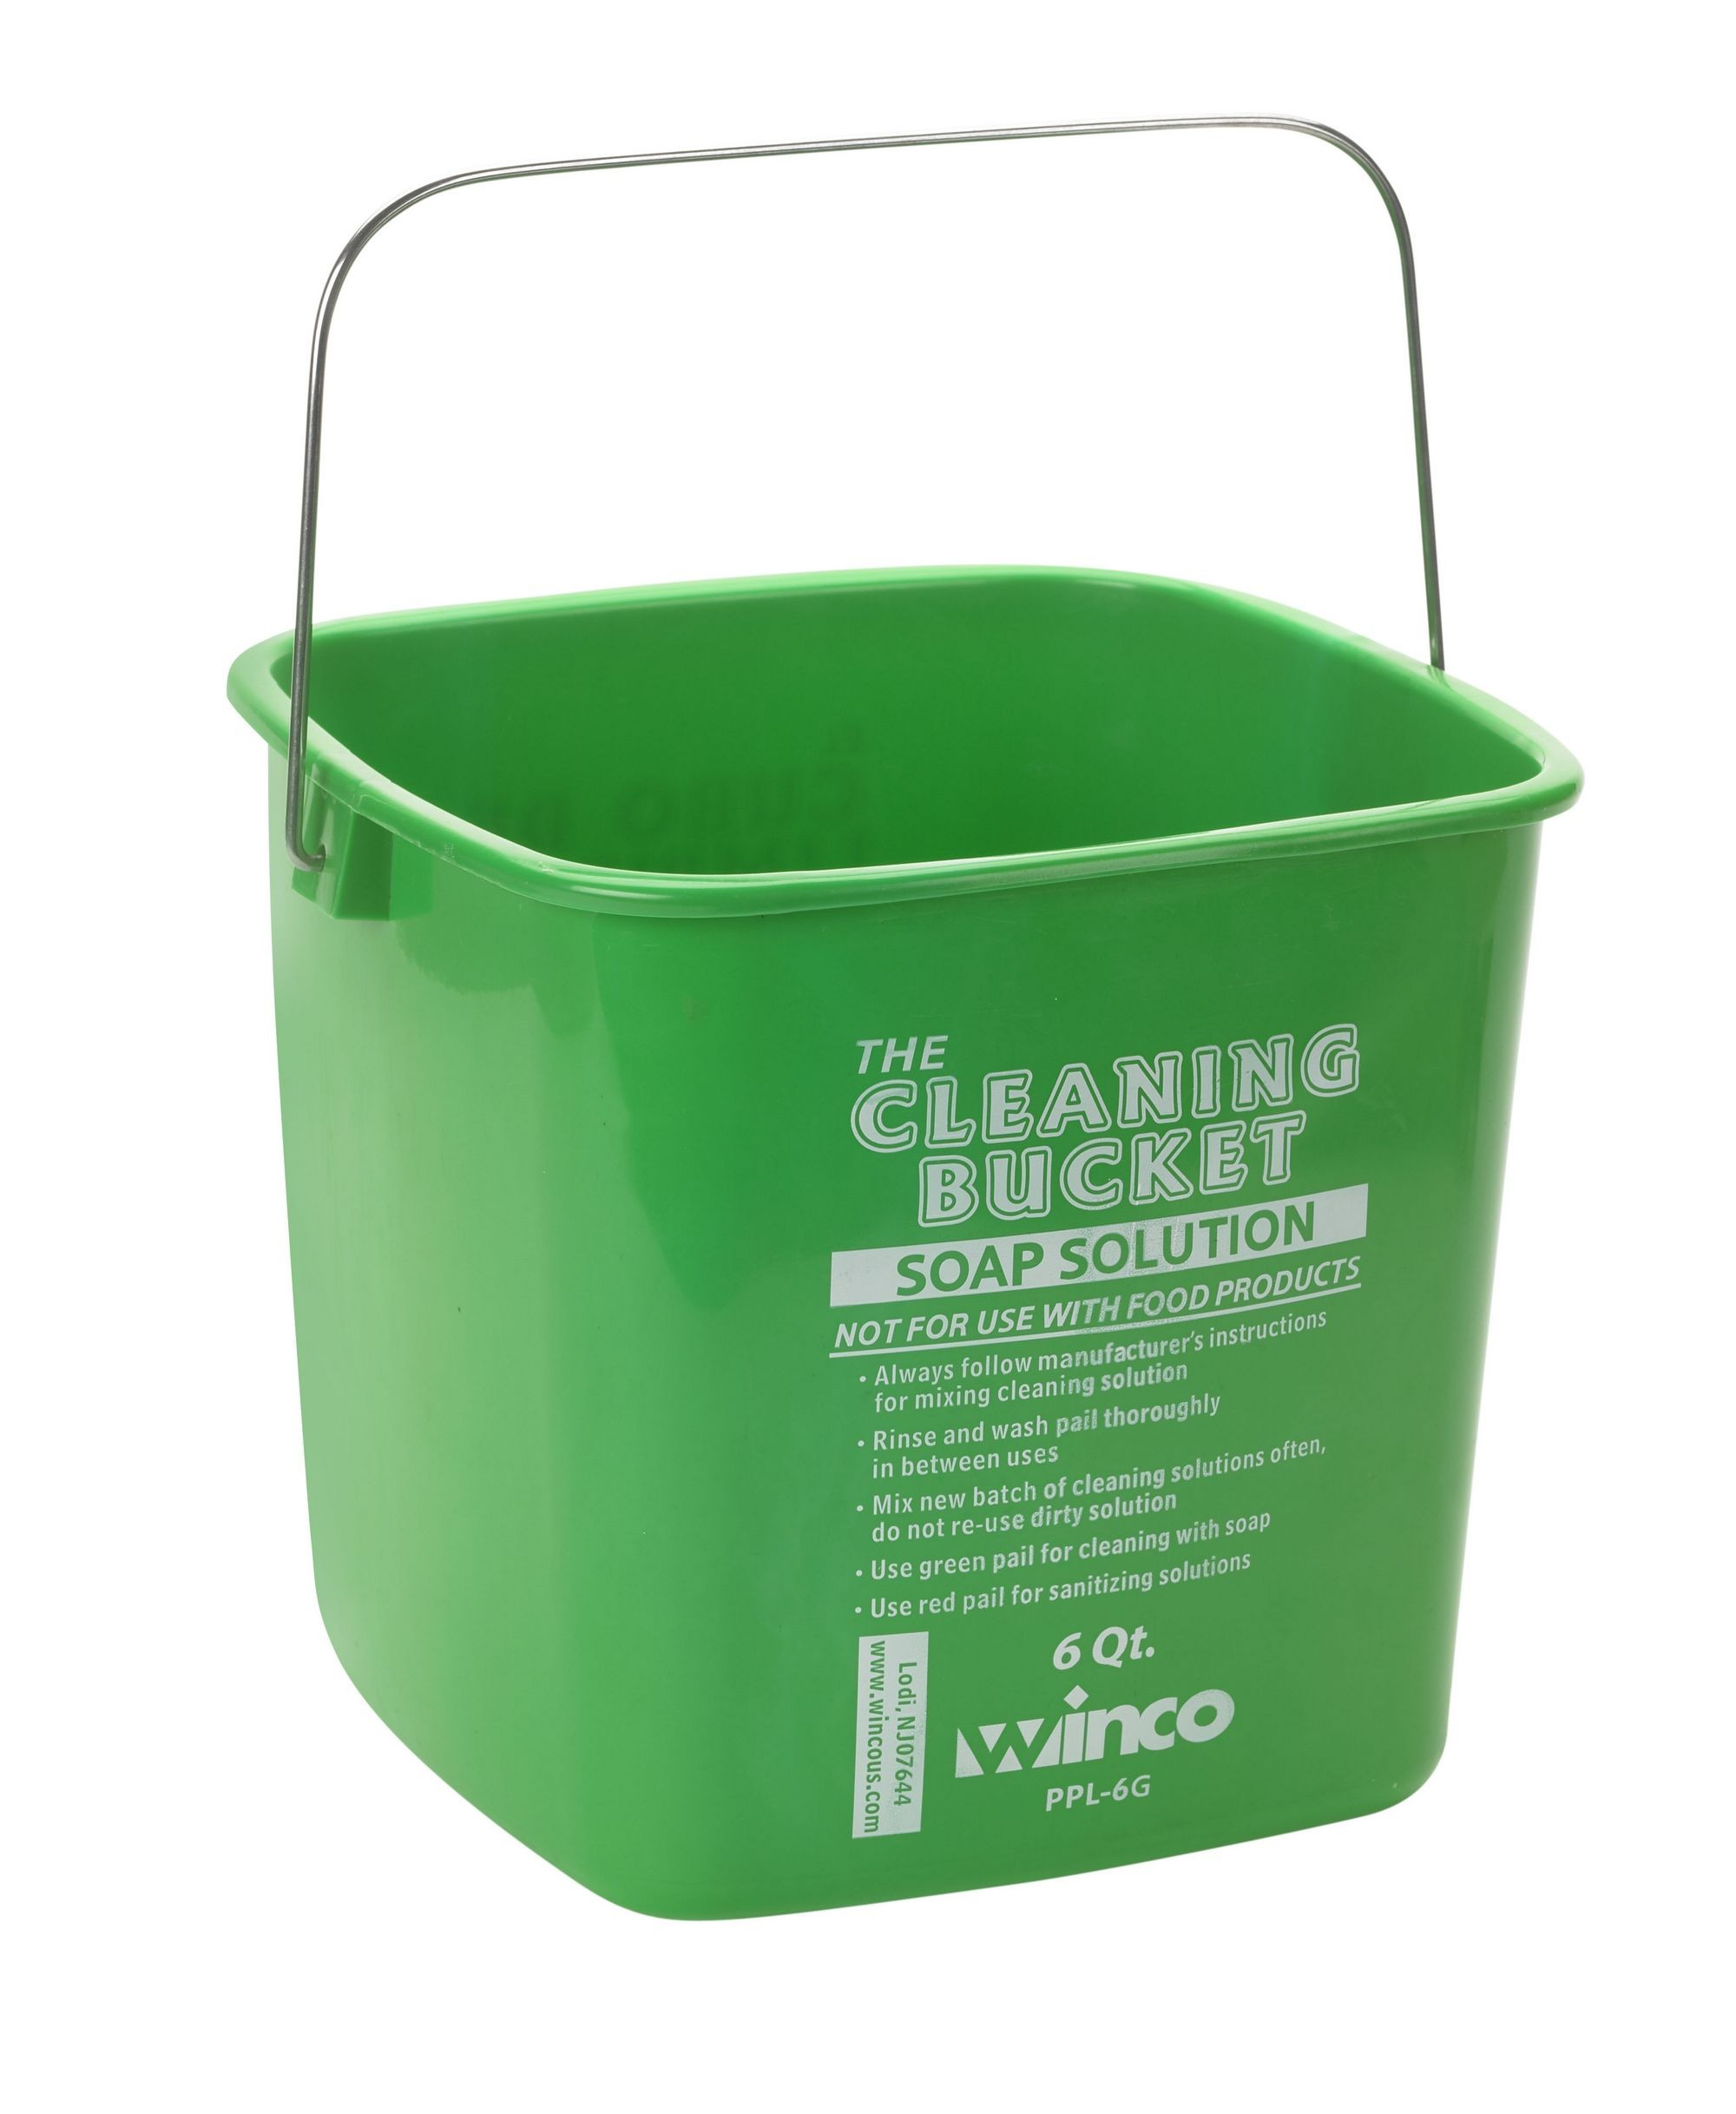 Winco PPL-6G Cleaning Bucket 6 Qt. Green Soap Solution